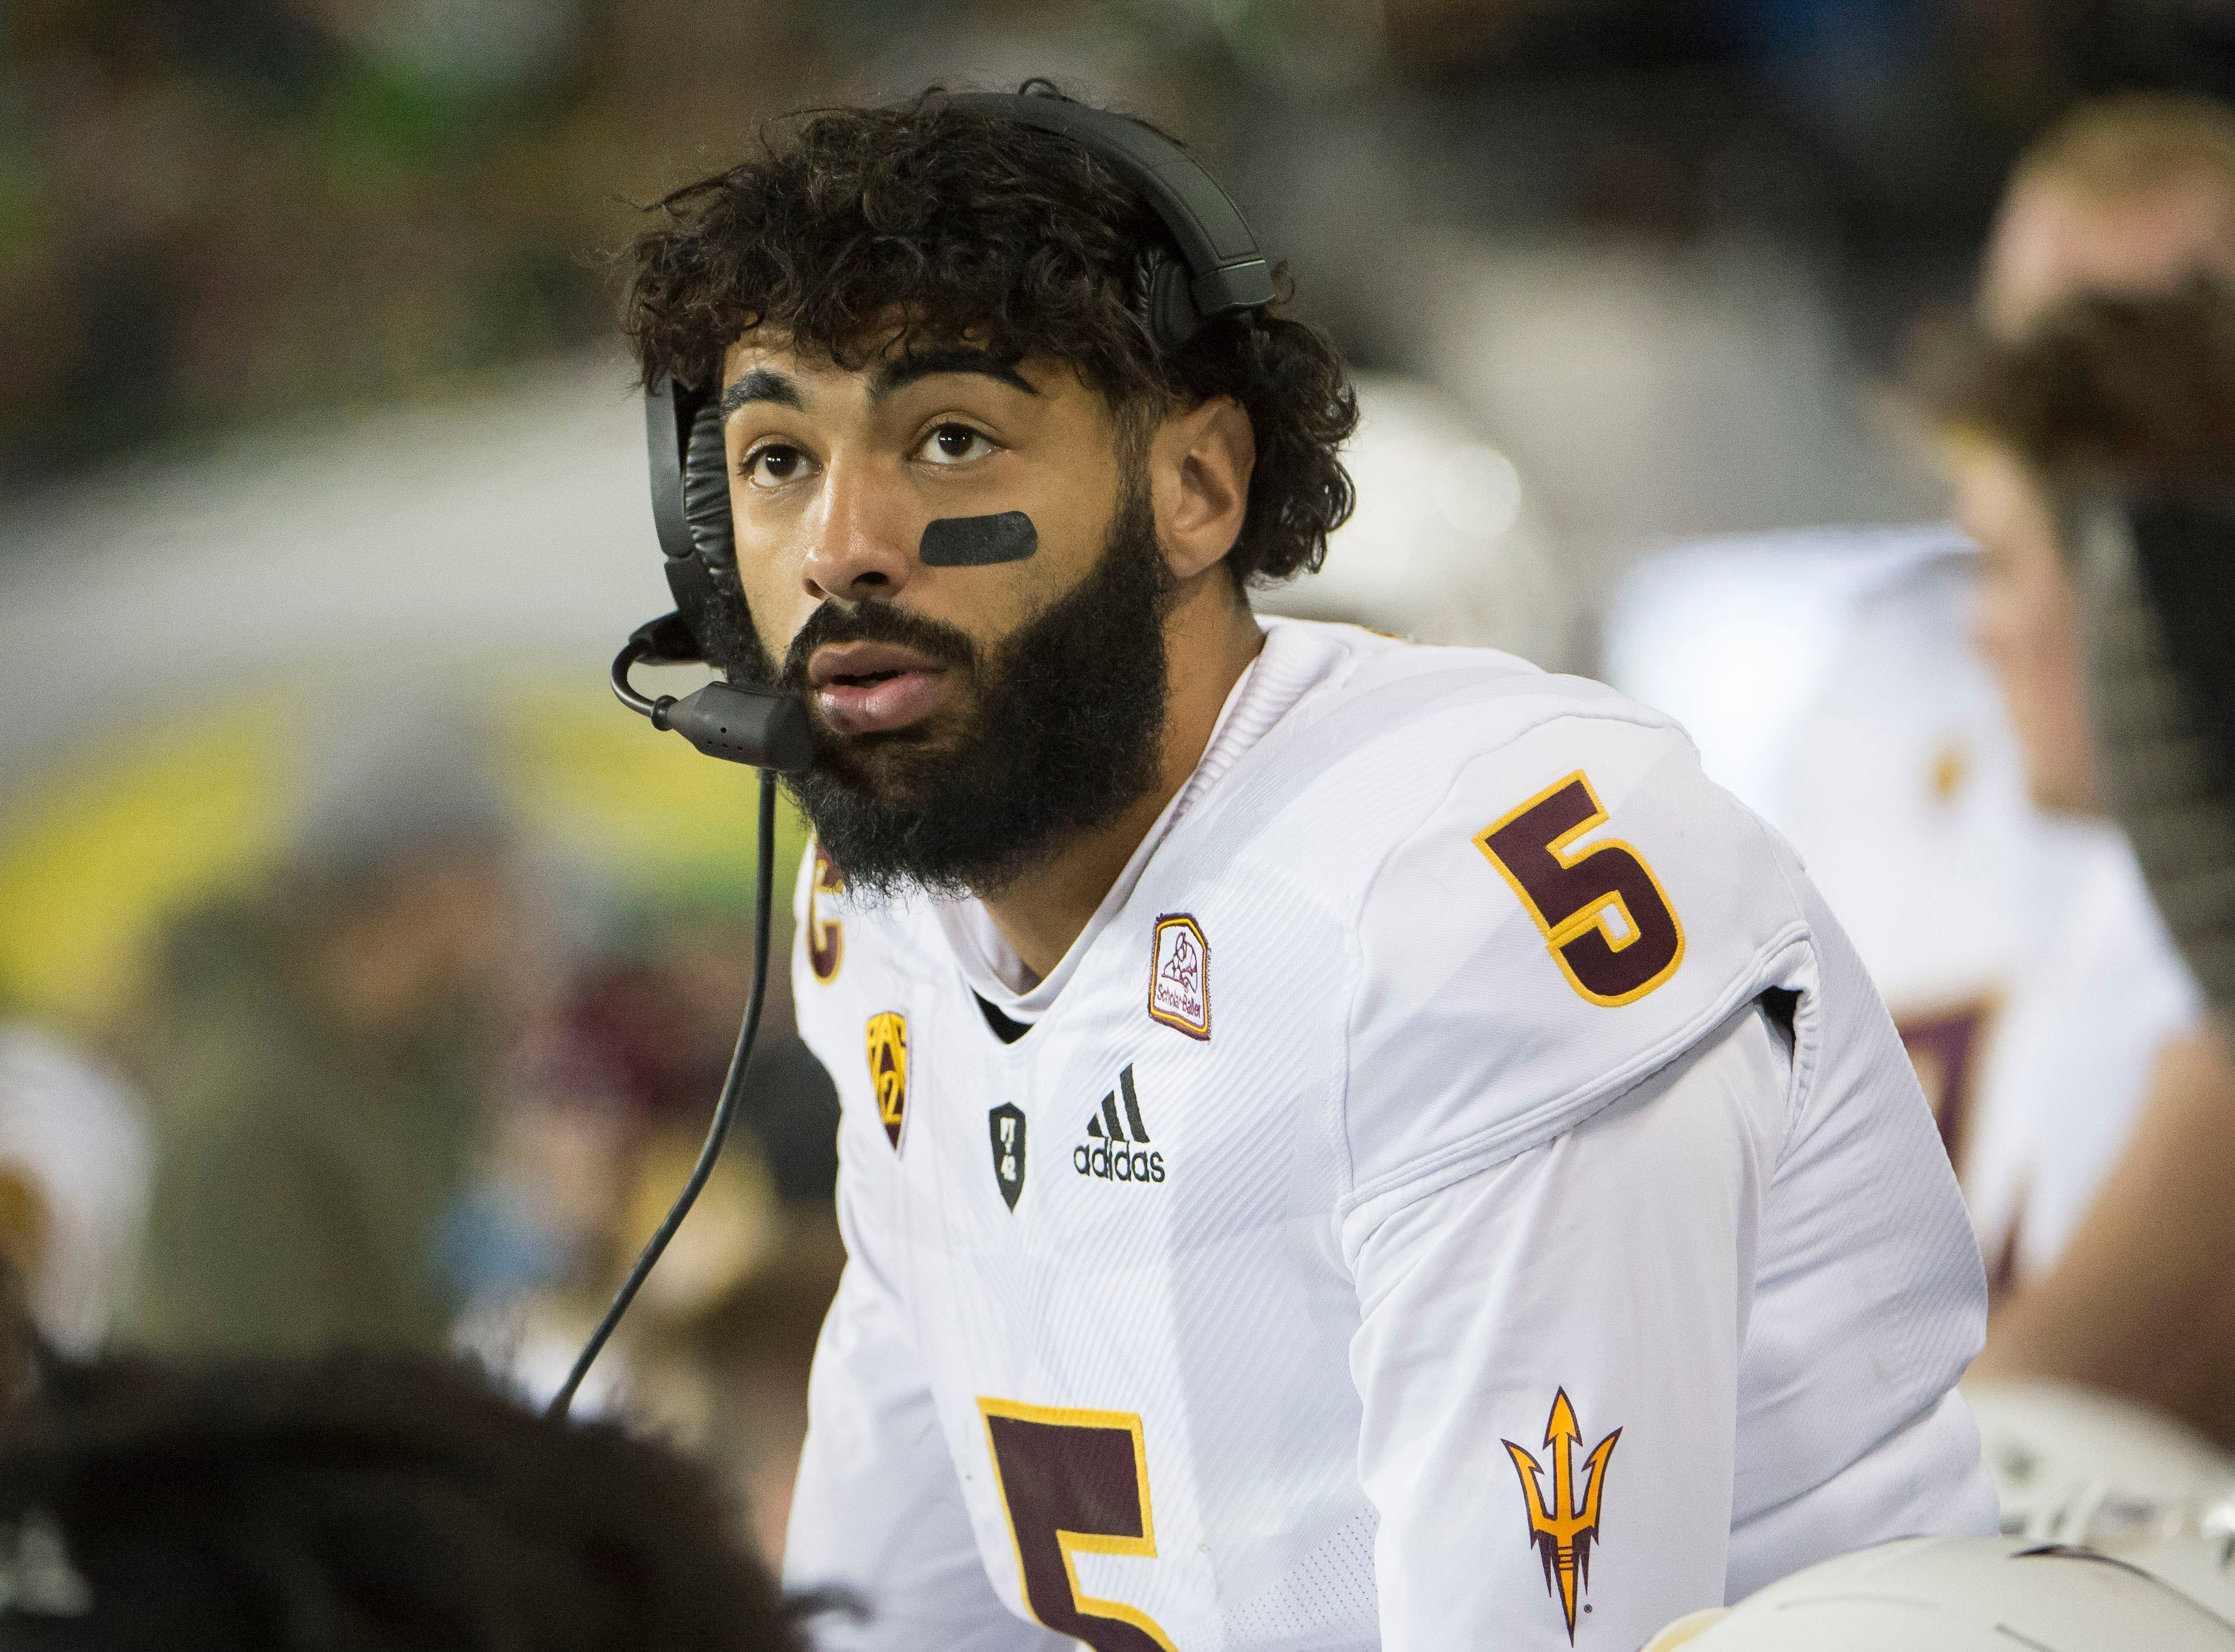 Nov 17, 2018; Eugene, OR, USA; Arizona State Sun Devils quarterback Manny Wilkins (5) talks to coaches on the sidelines during the first half against the Oregon Ducks at Autzen Stadium. Mandatory Credit: Troy Wayrynen-USA TODAY Sports